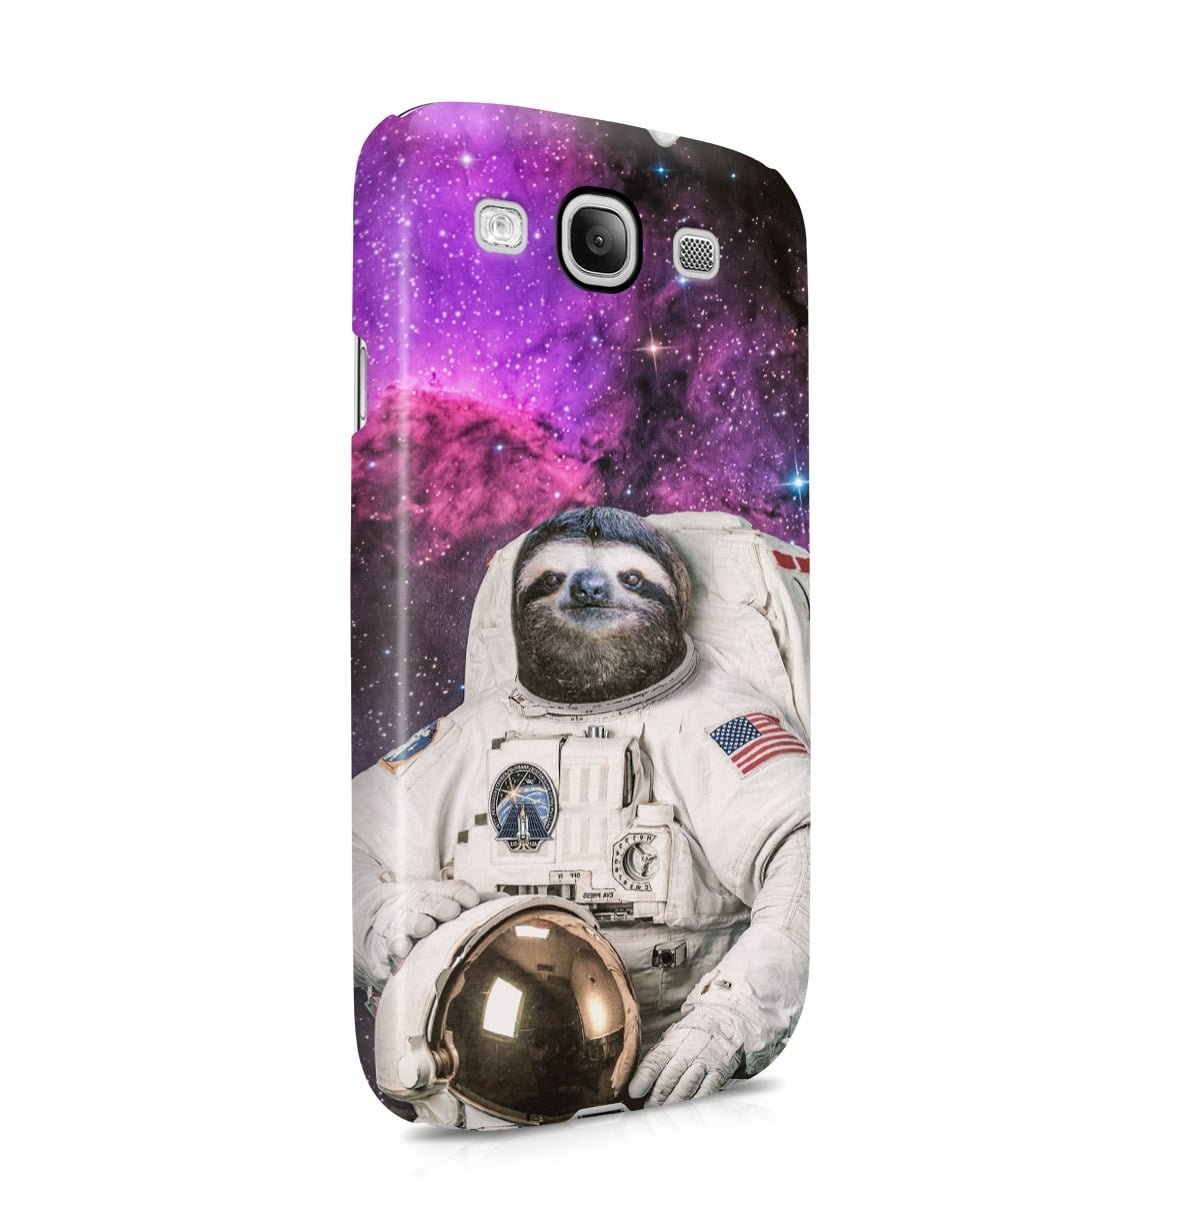 Astronaut Sloth Cosmic Cover Samsung Galaxy S3 Snap-On Hard Plastic Protective Shell Case Cover Cust